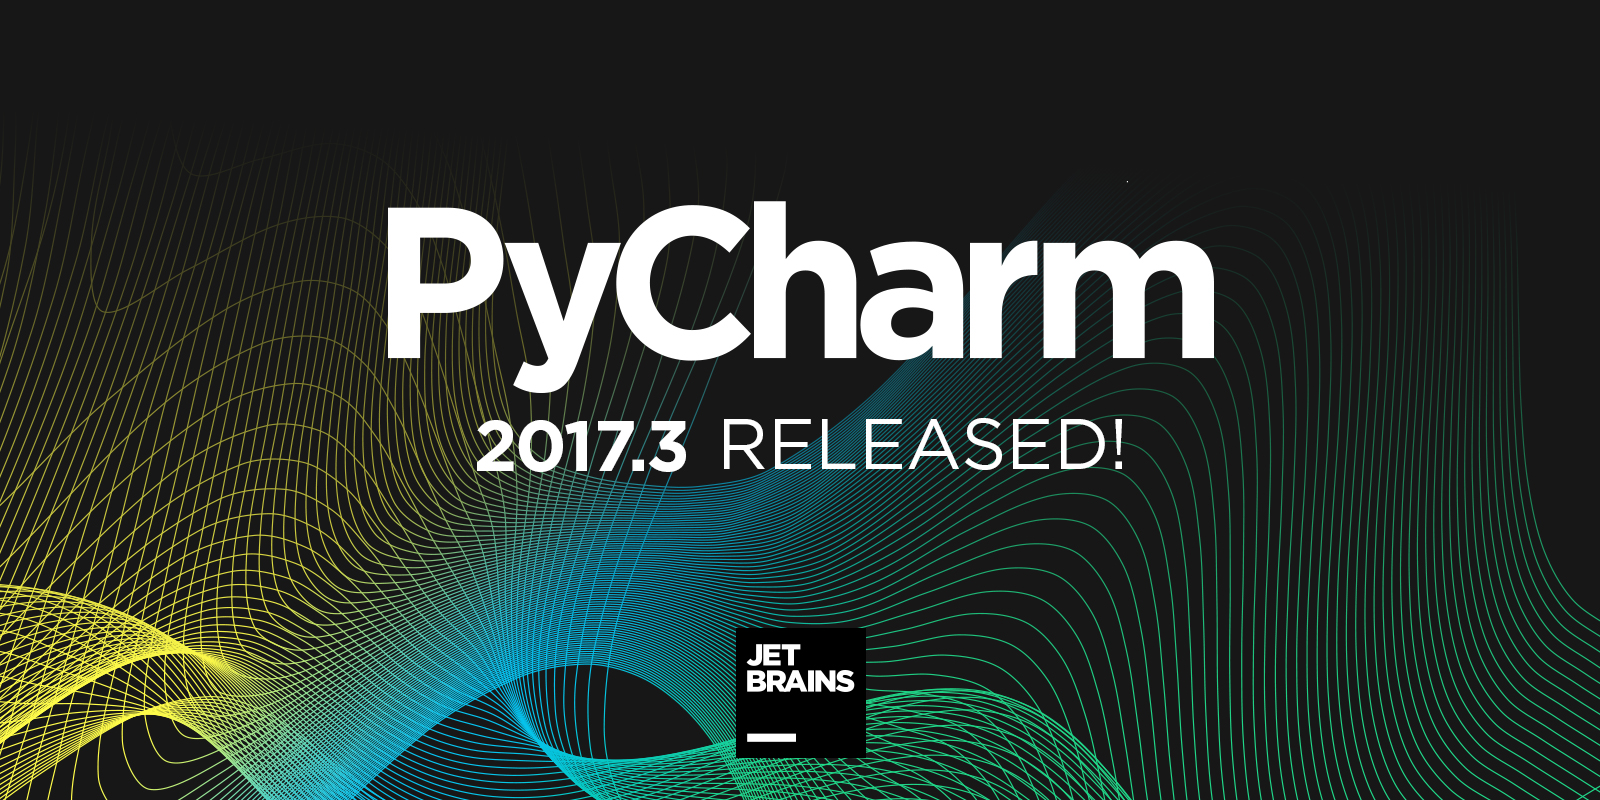 PyCharm 2017.3 Released